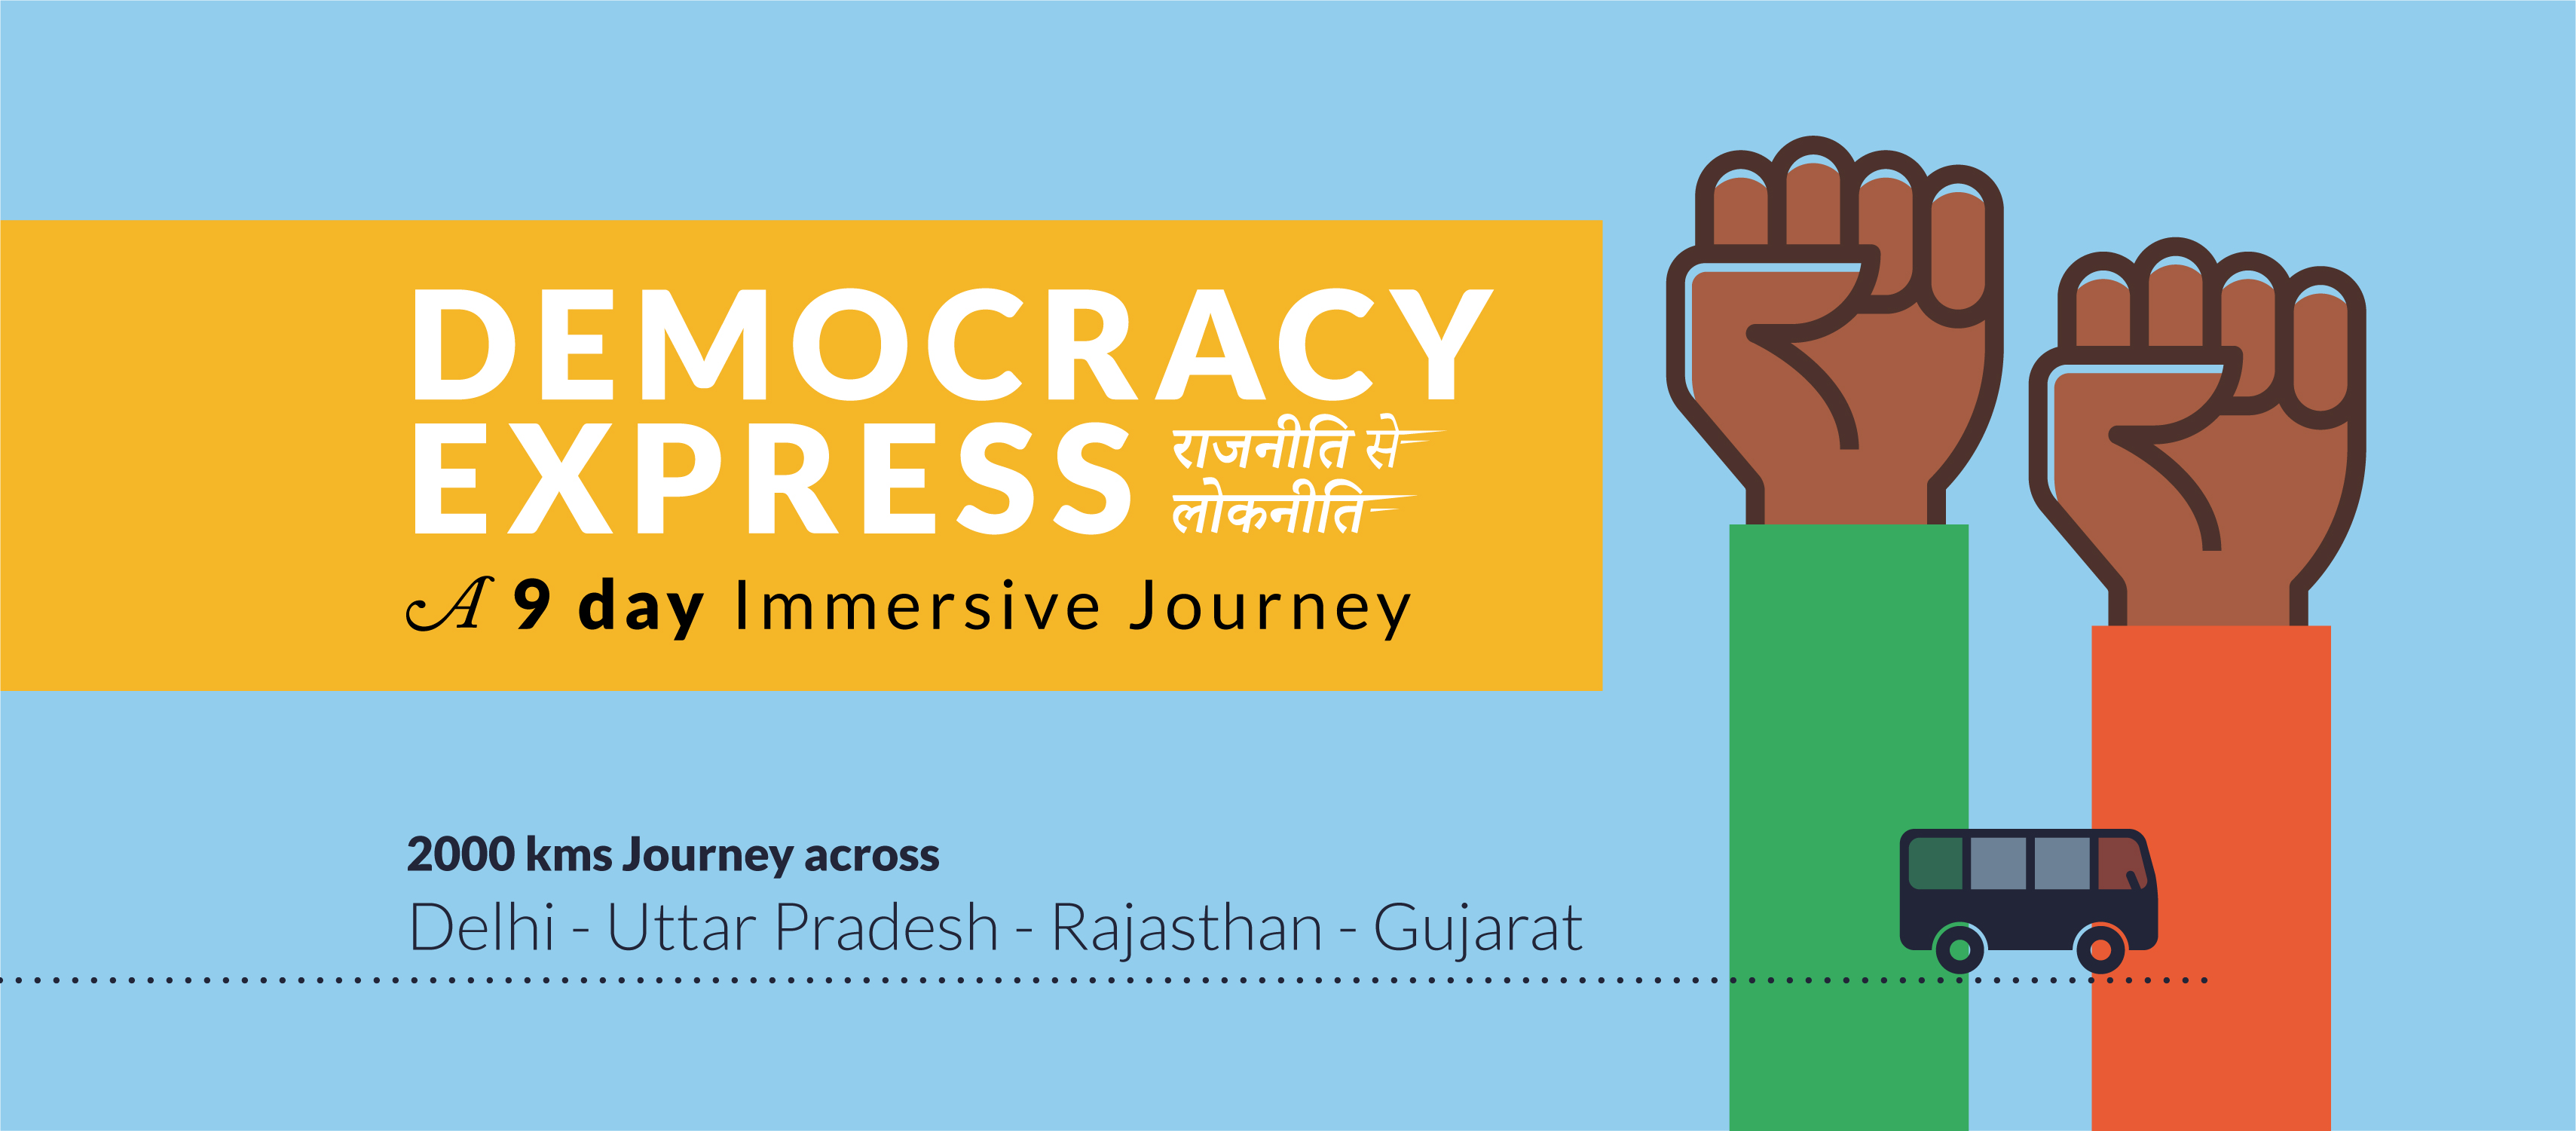 Immersive Journey by Indian School of Democracy, Delhi